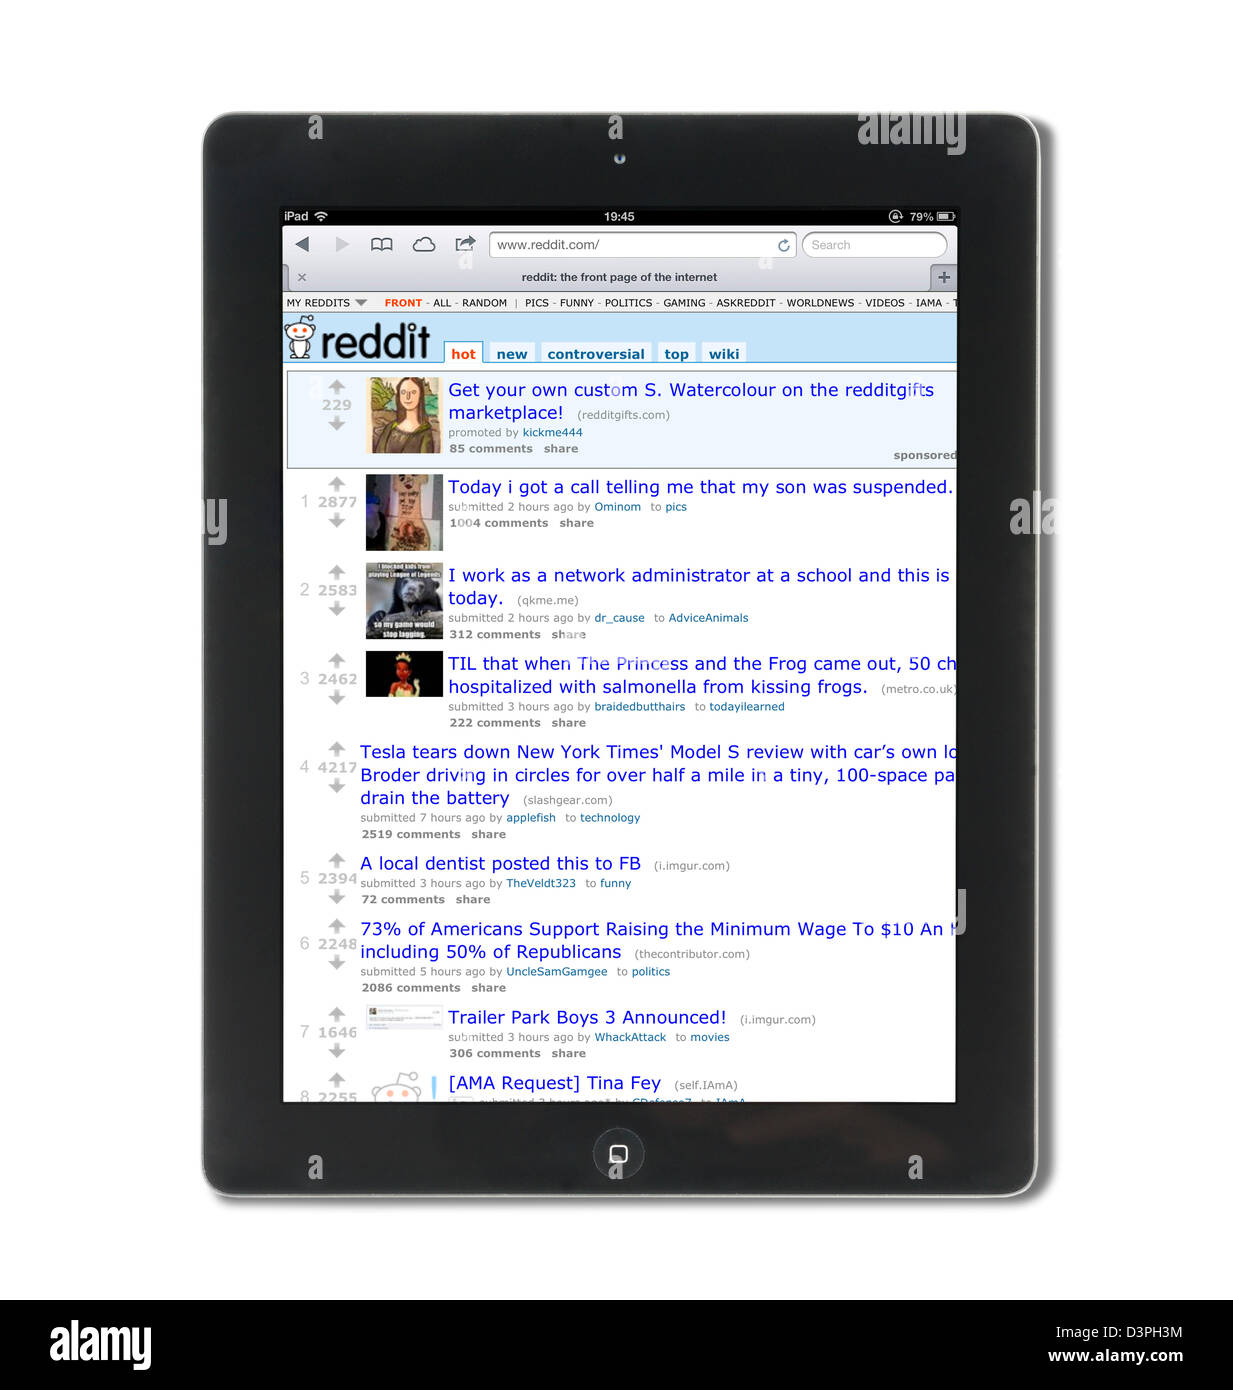 Reddit, the social news and entertainment site, viewed on a 4th generation Apple iPad - Stock Image